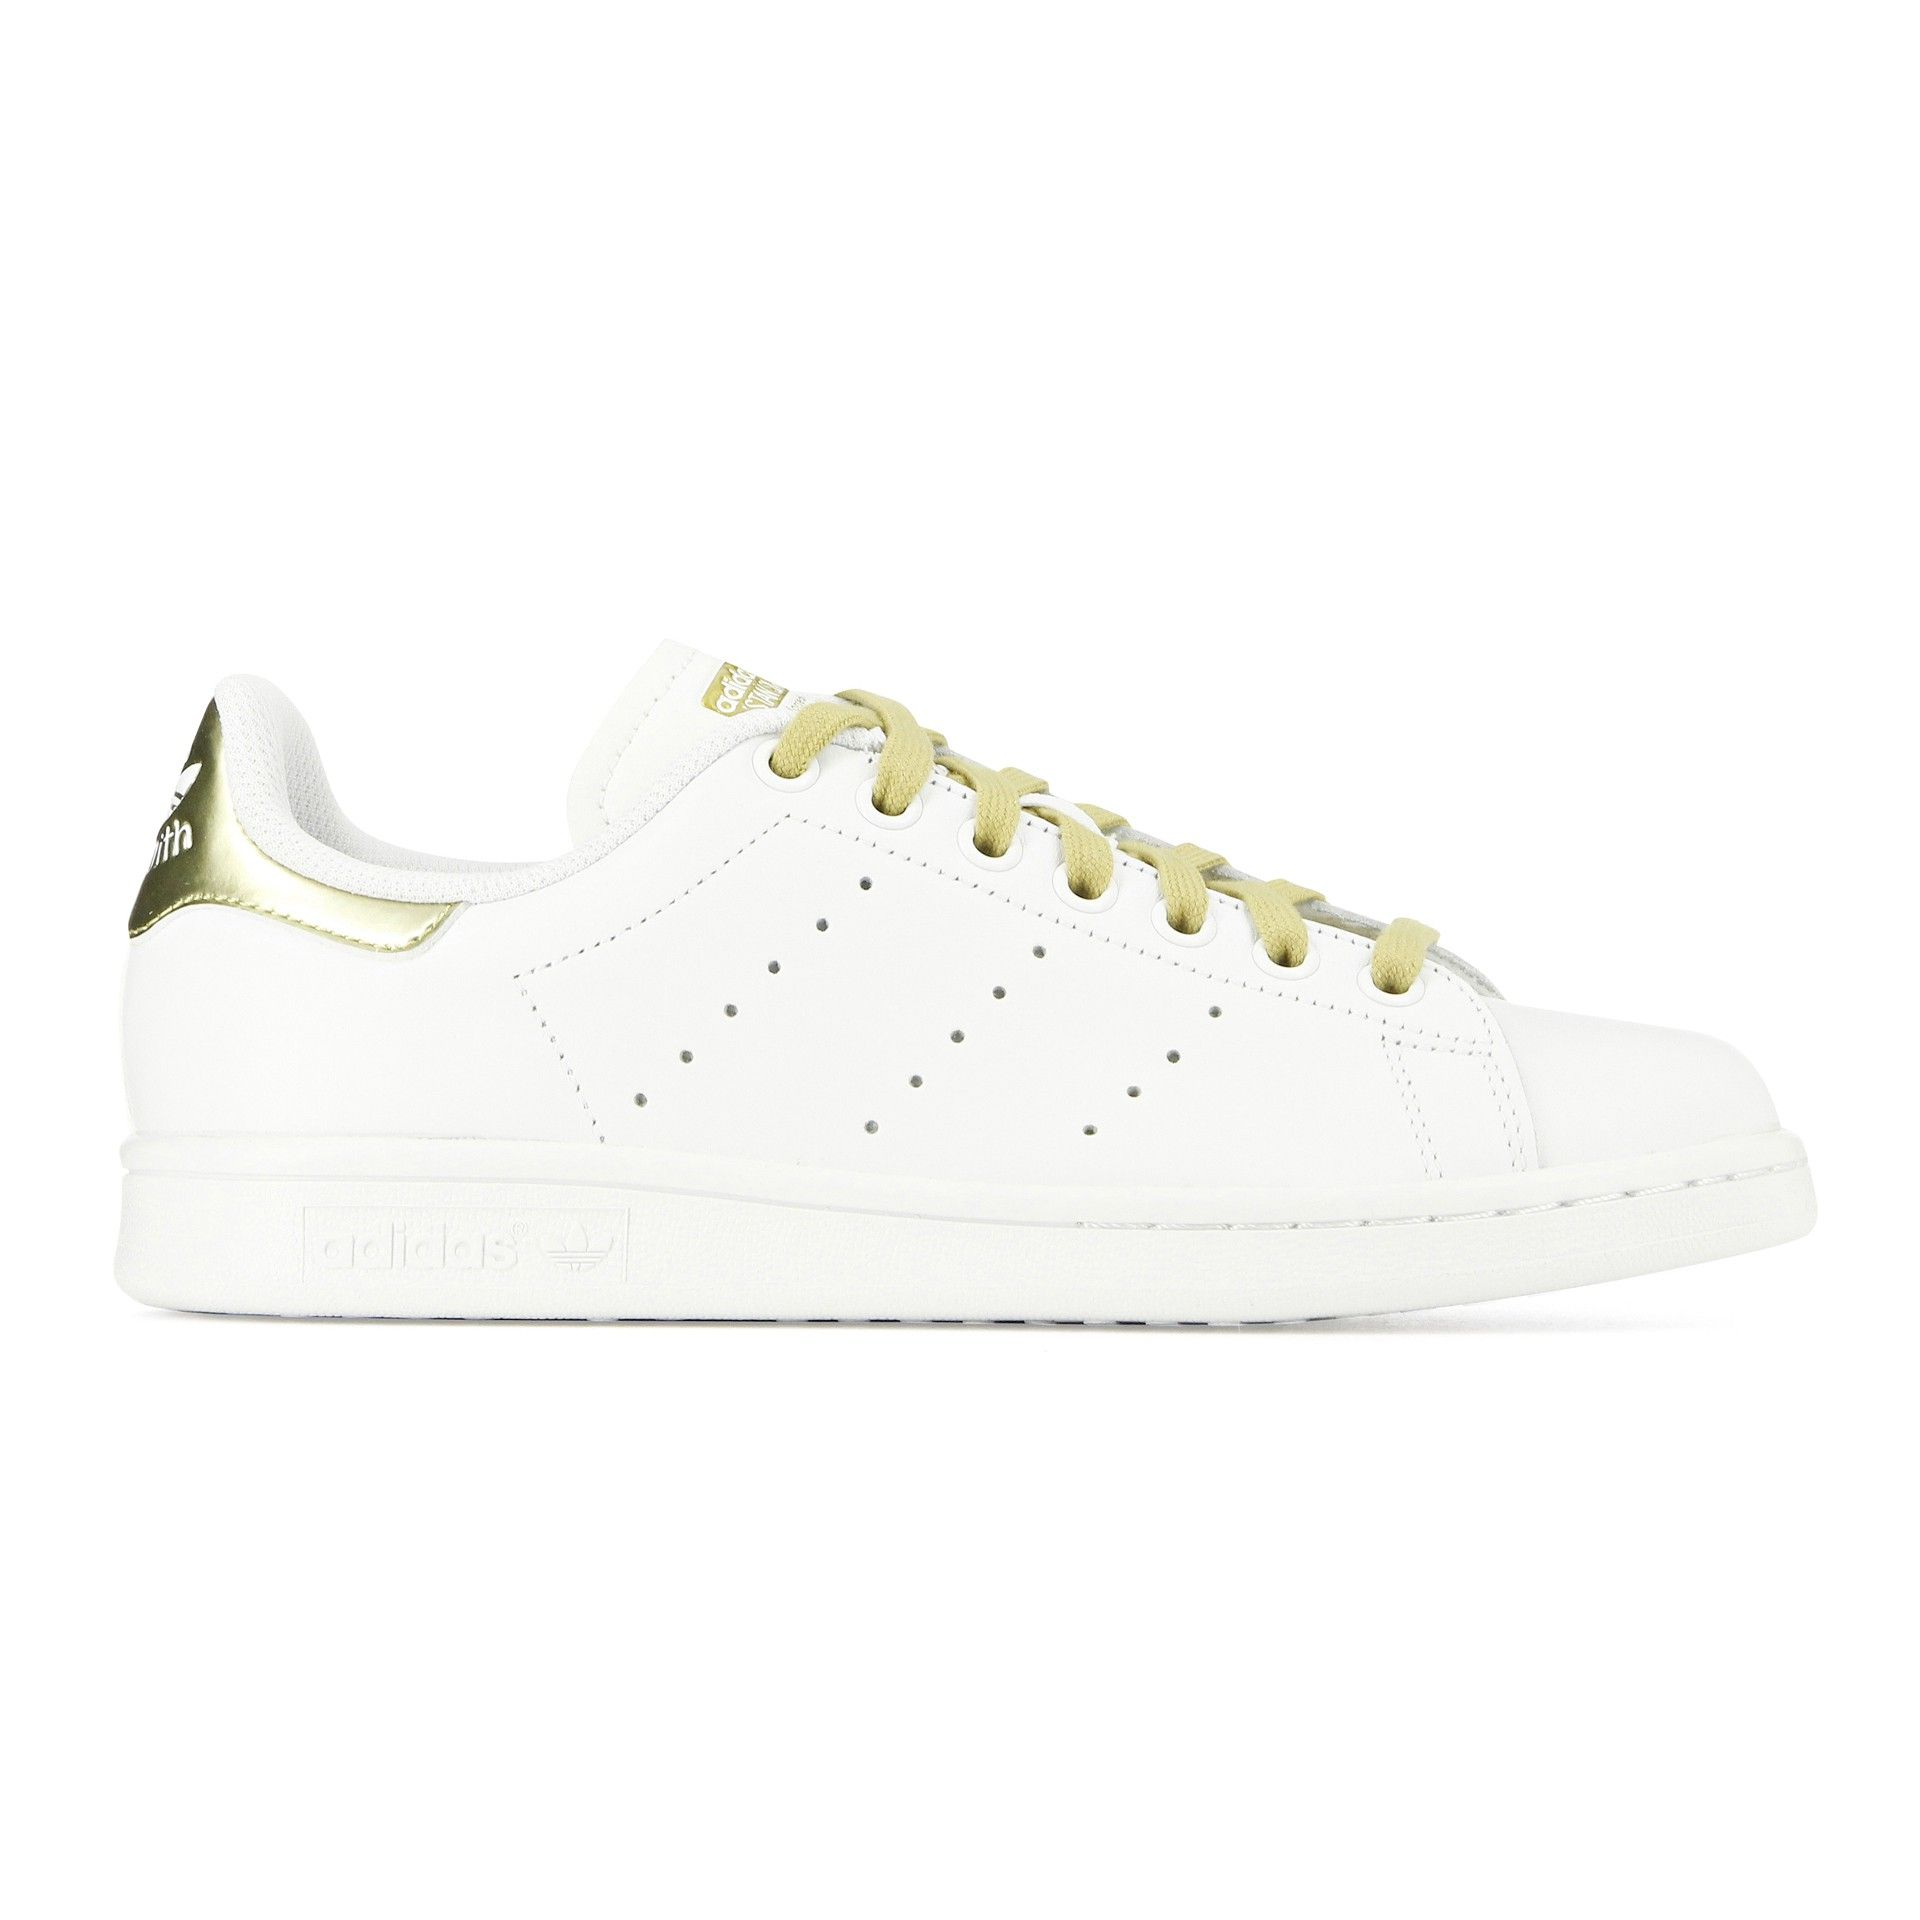 Stan smith scratch femme taille 37